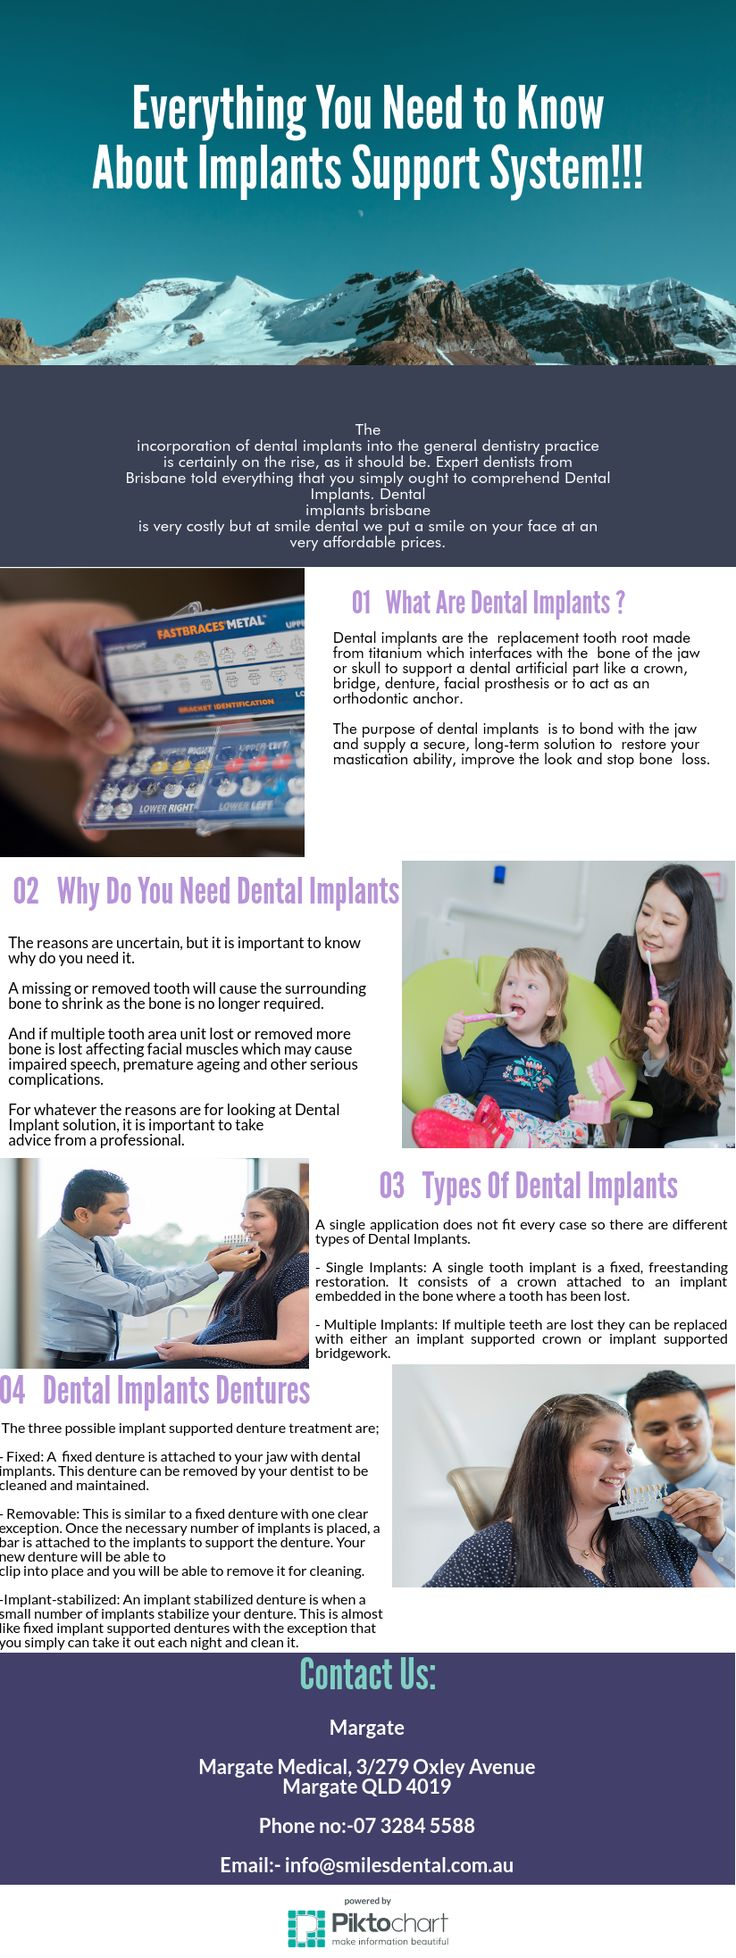 The incorporation of dental implants into the general dentistry practice is certainly on the rise, as it should be. Expert dentists from Brisbane told everything that you simply ought to comprehend Dental Implants. Dental implants brisbane is very costly but at smile dental we put a smile on your face at an very affordable prices.